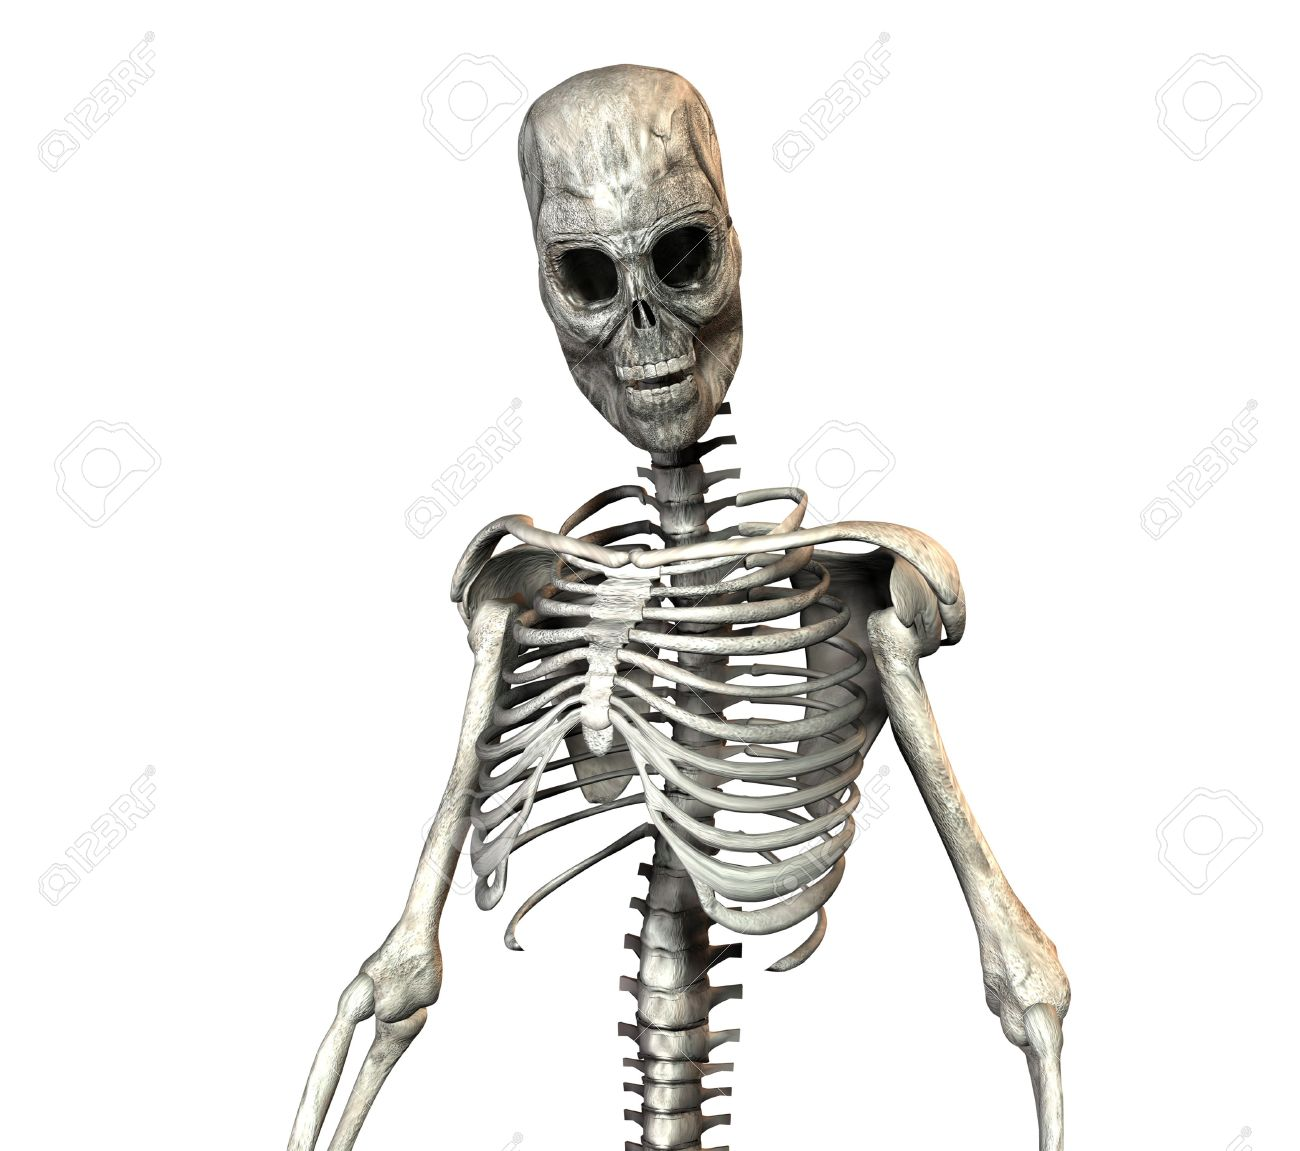 A Illustration Of A Skeleton On A White Background Stock Photo ...